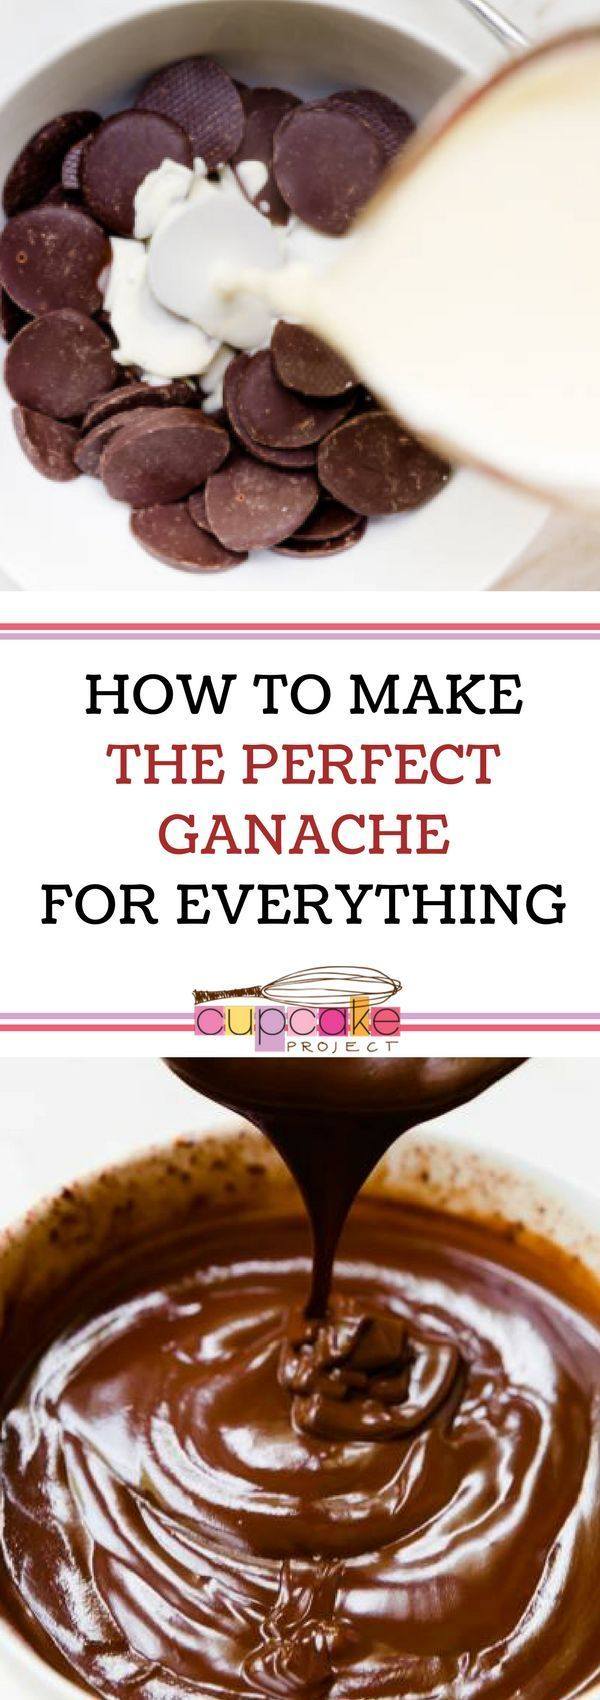 Easy chocolate ganache recipe easy that is perfect for everything! By combining chocolate and heavy whipping cream, you can create cake filling, poured glaze, a spread or piped frosting, a decorative drizzle, or the base for truffles. For more simple baki